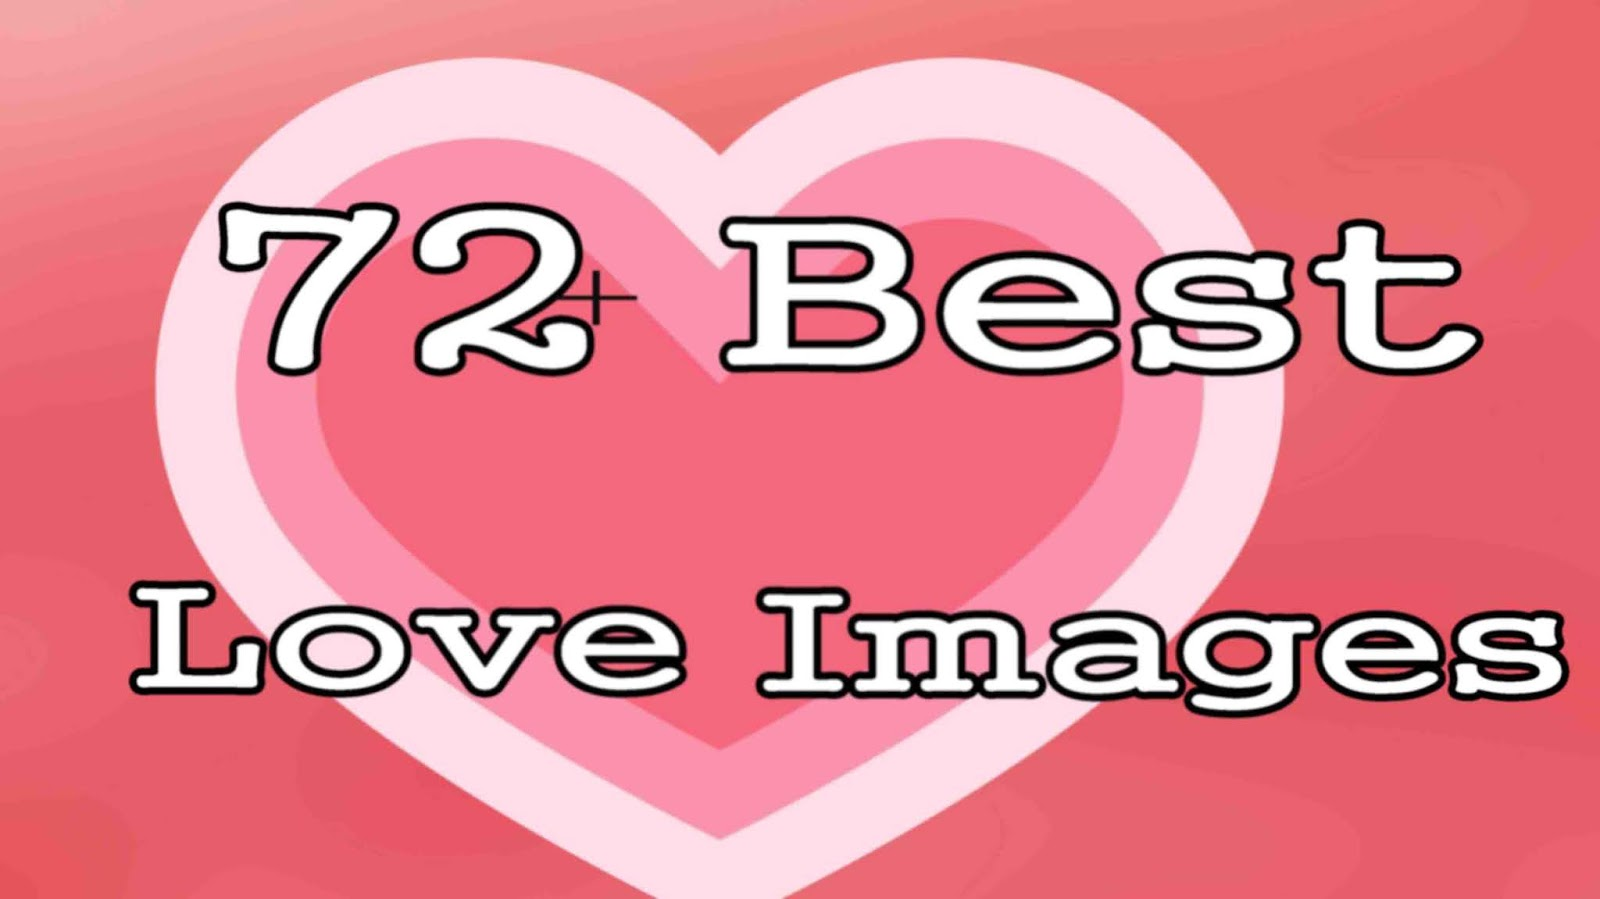 72+ Best Love Images Download For Whatsapp